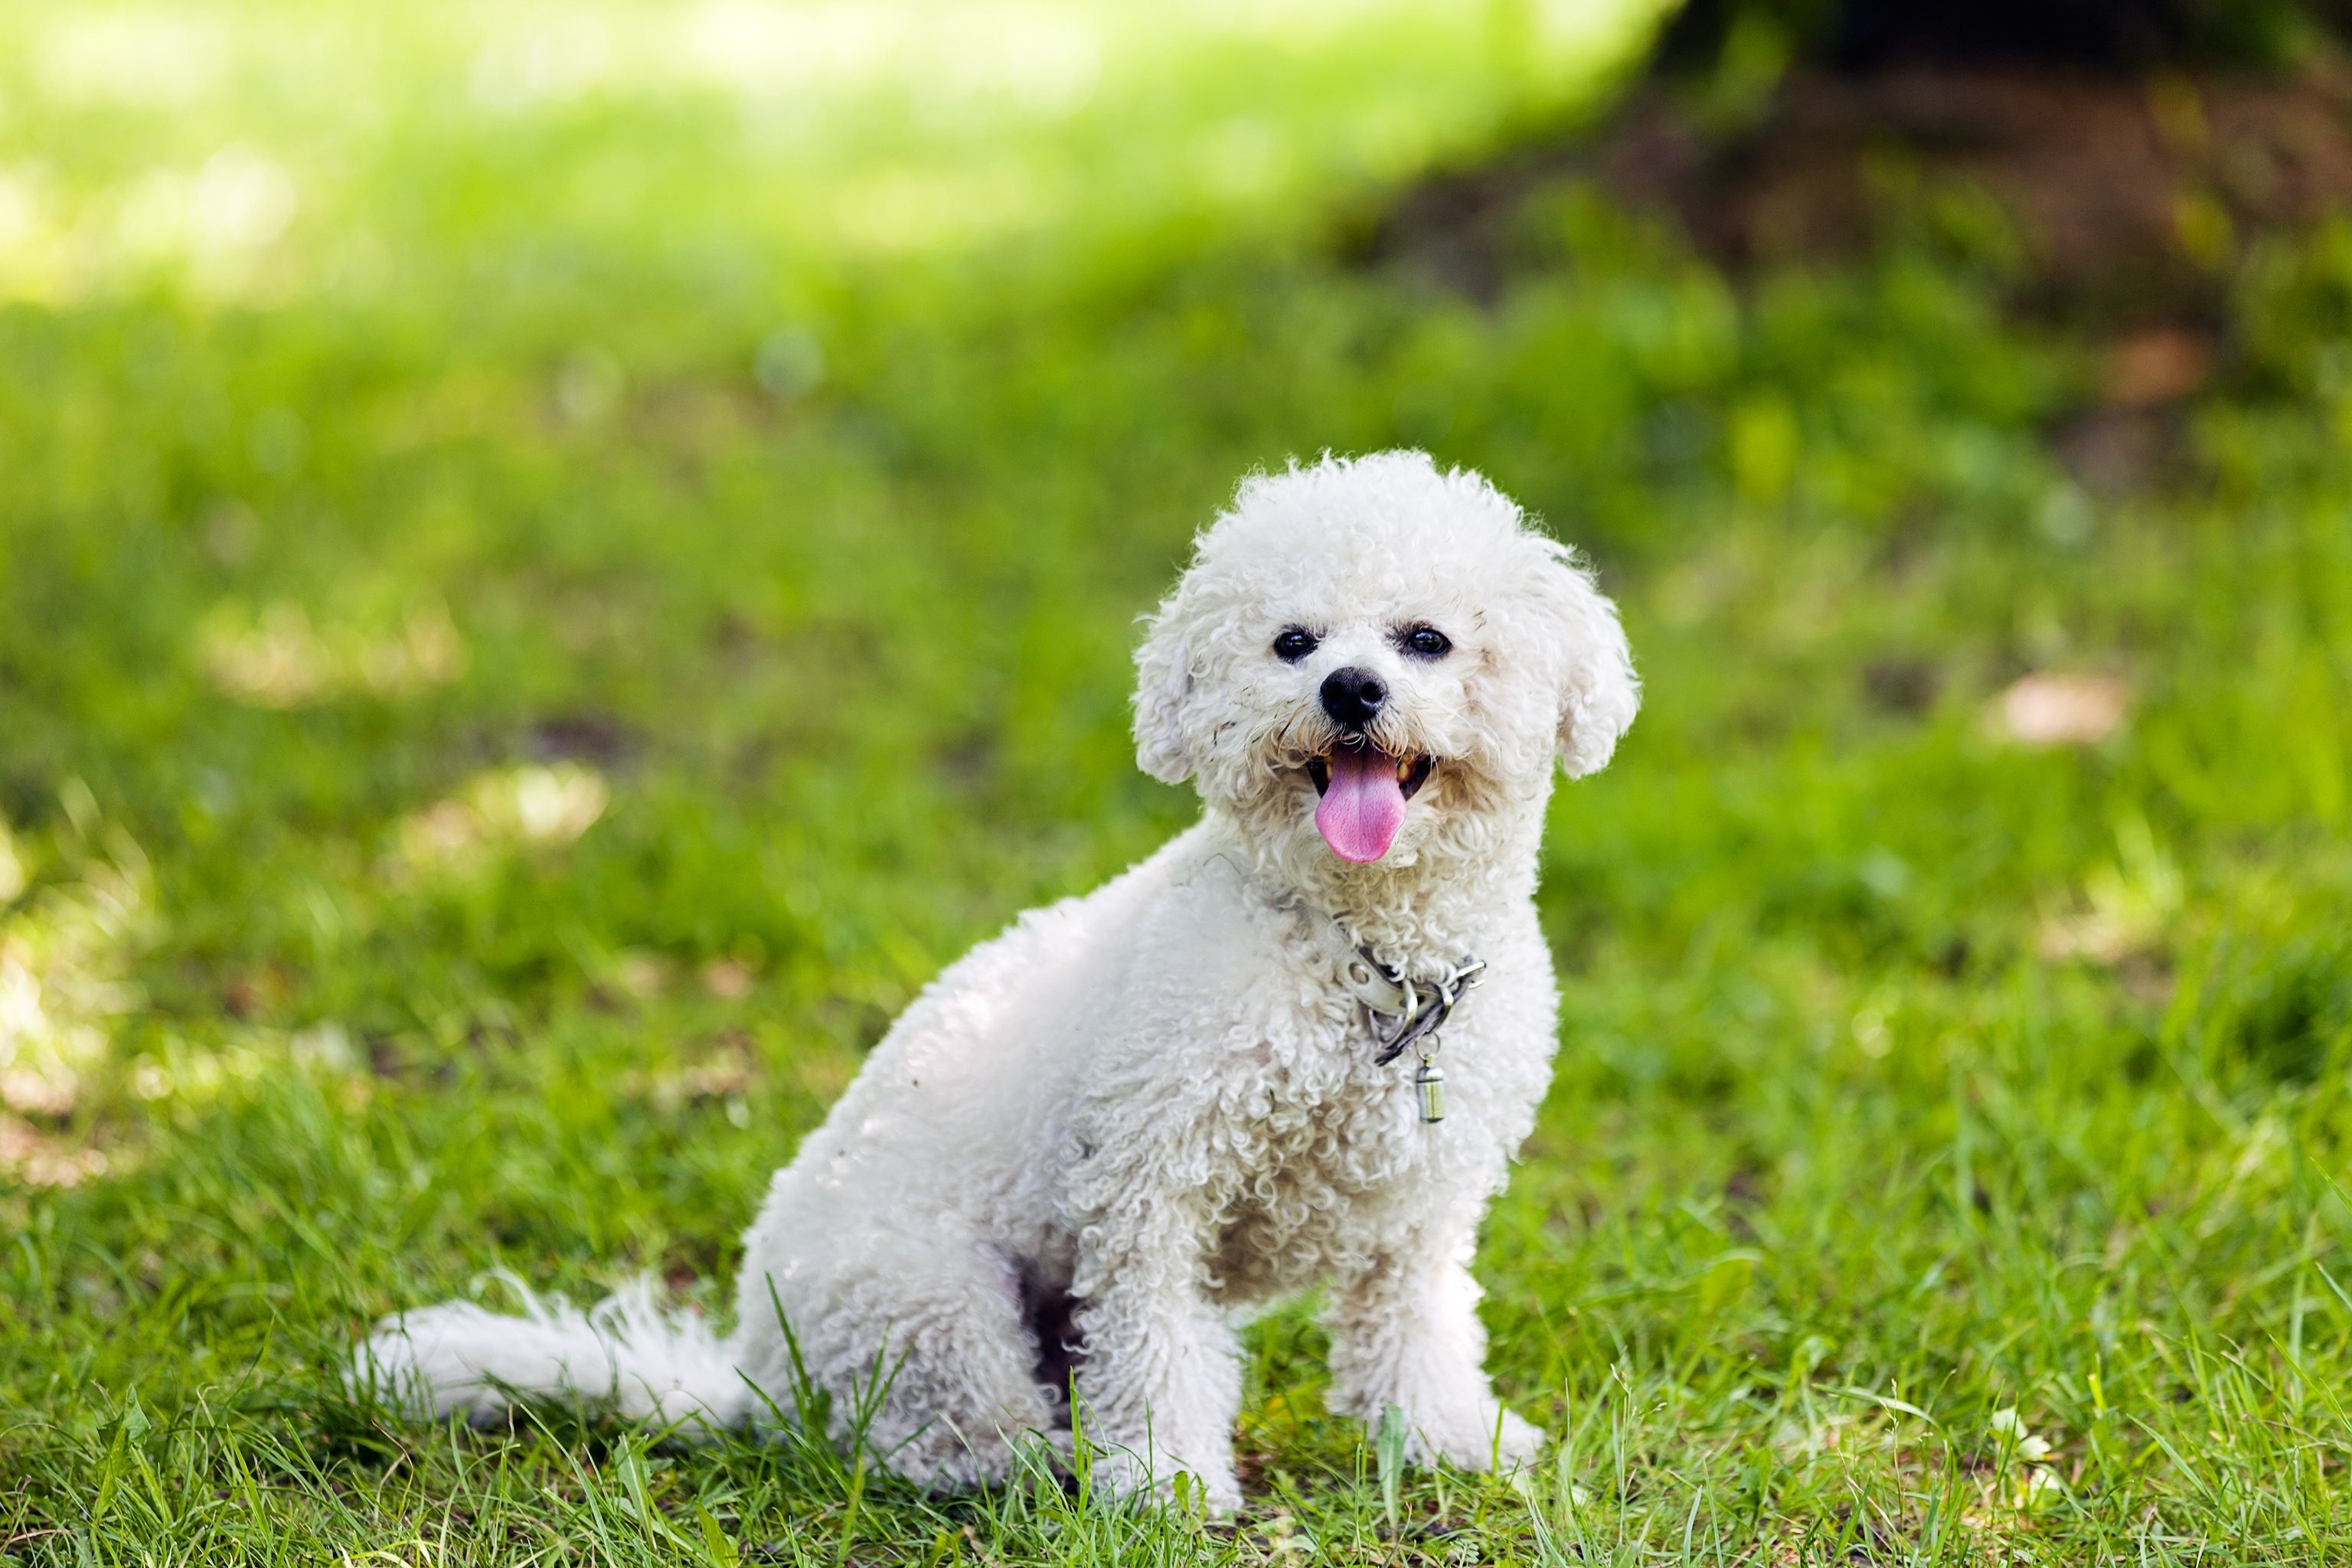 cute small bichon sitting in grass in the park, notice: shallow depth of field